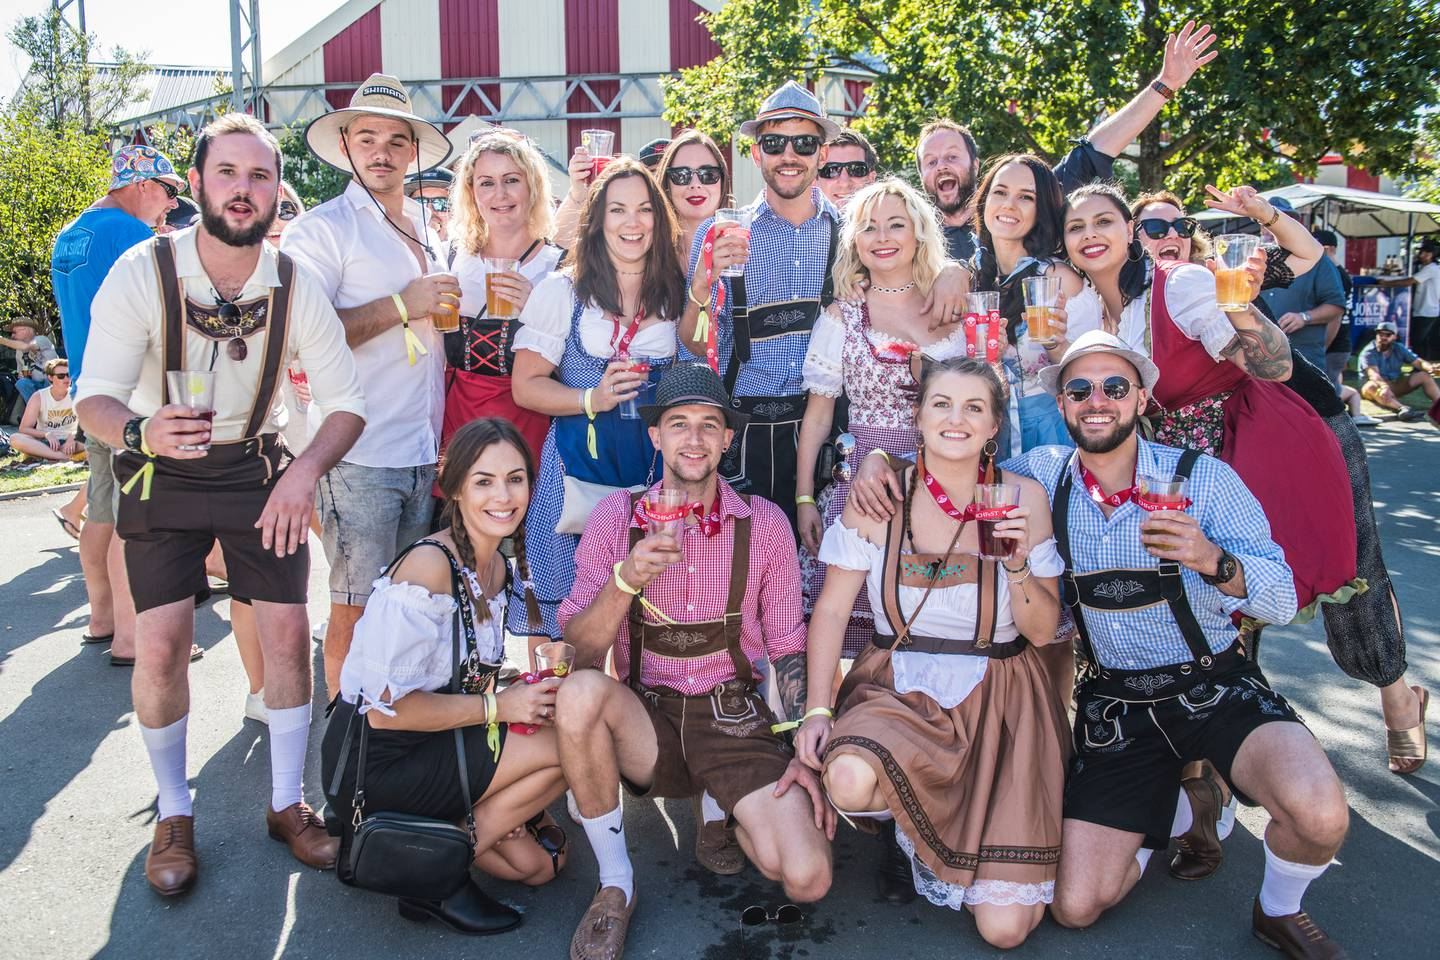 The annual Marchfest beer festival at Founders Park is a relaxed family event. Photo: Supplied